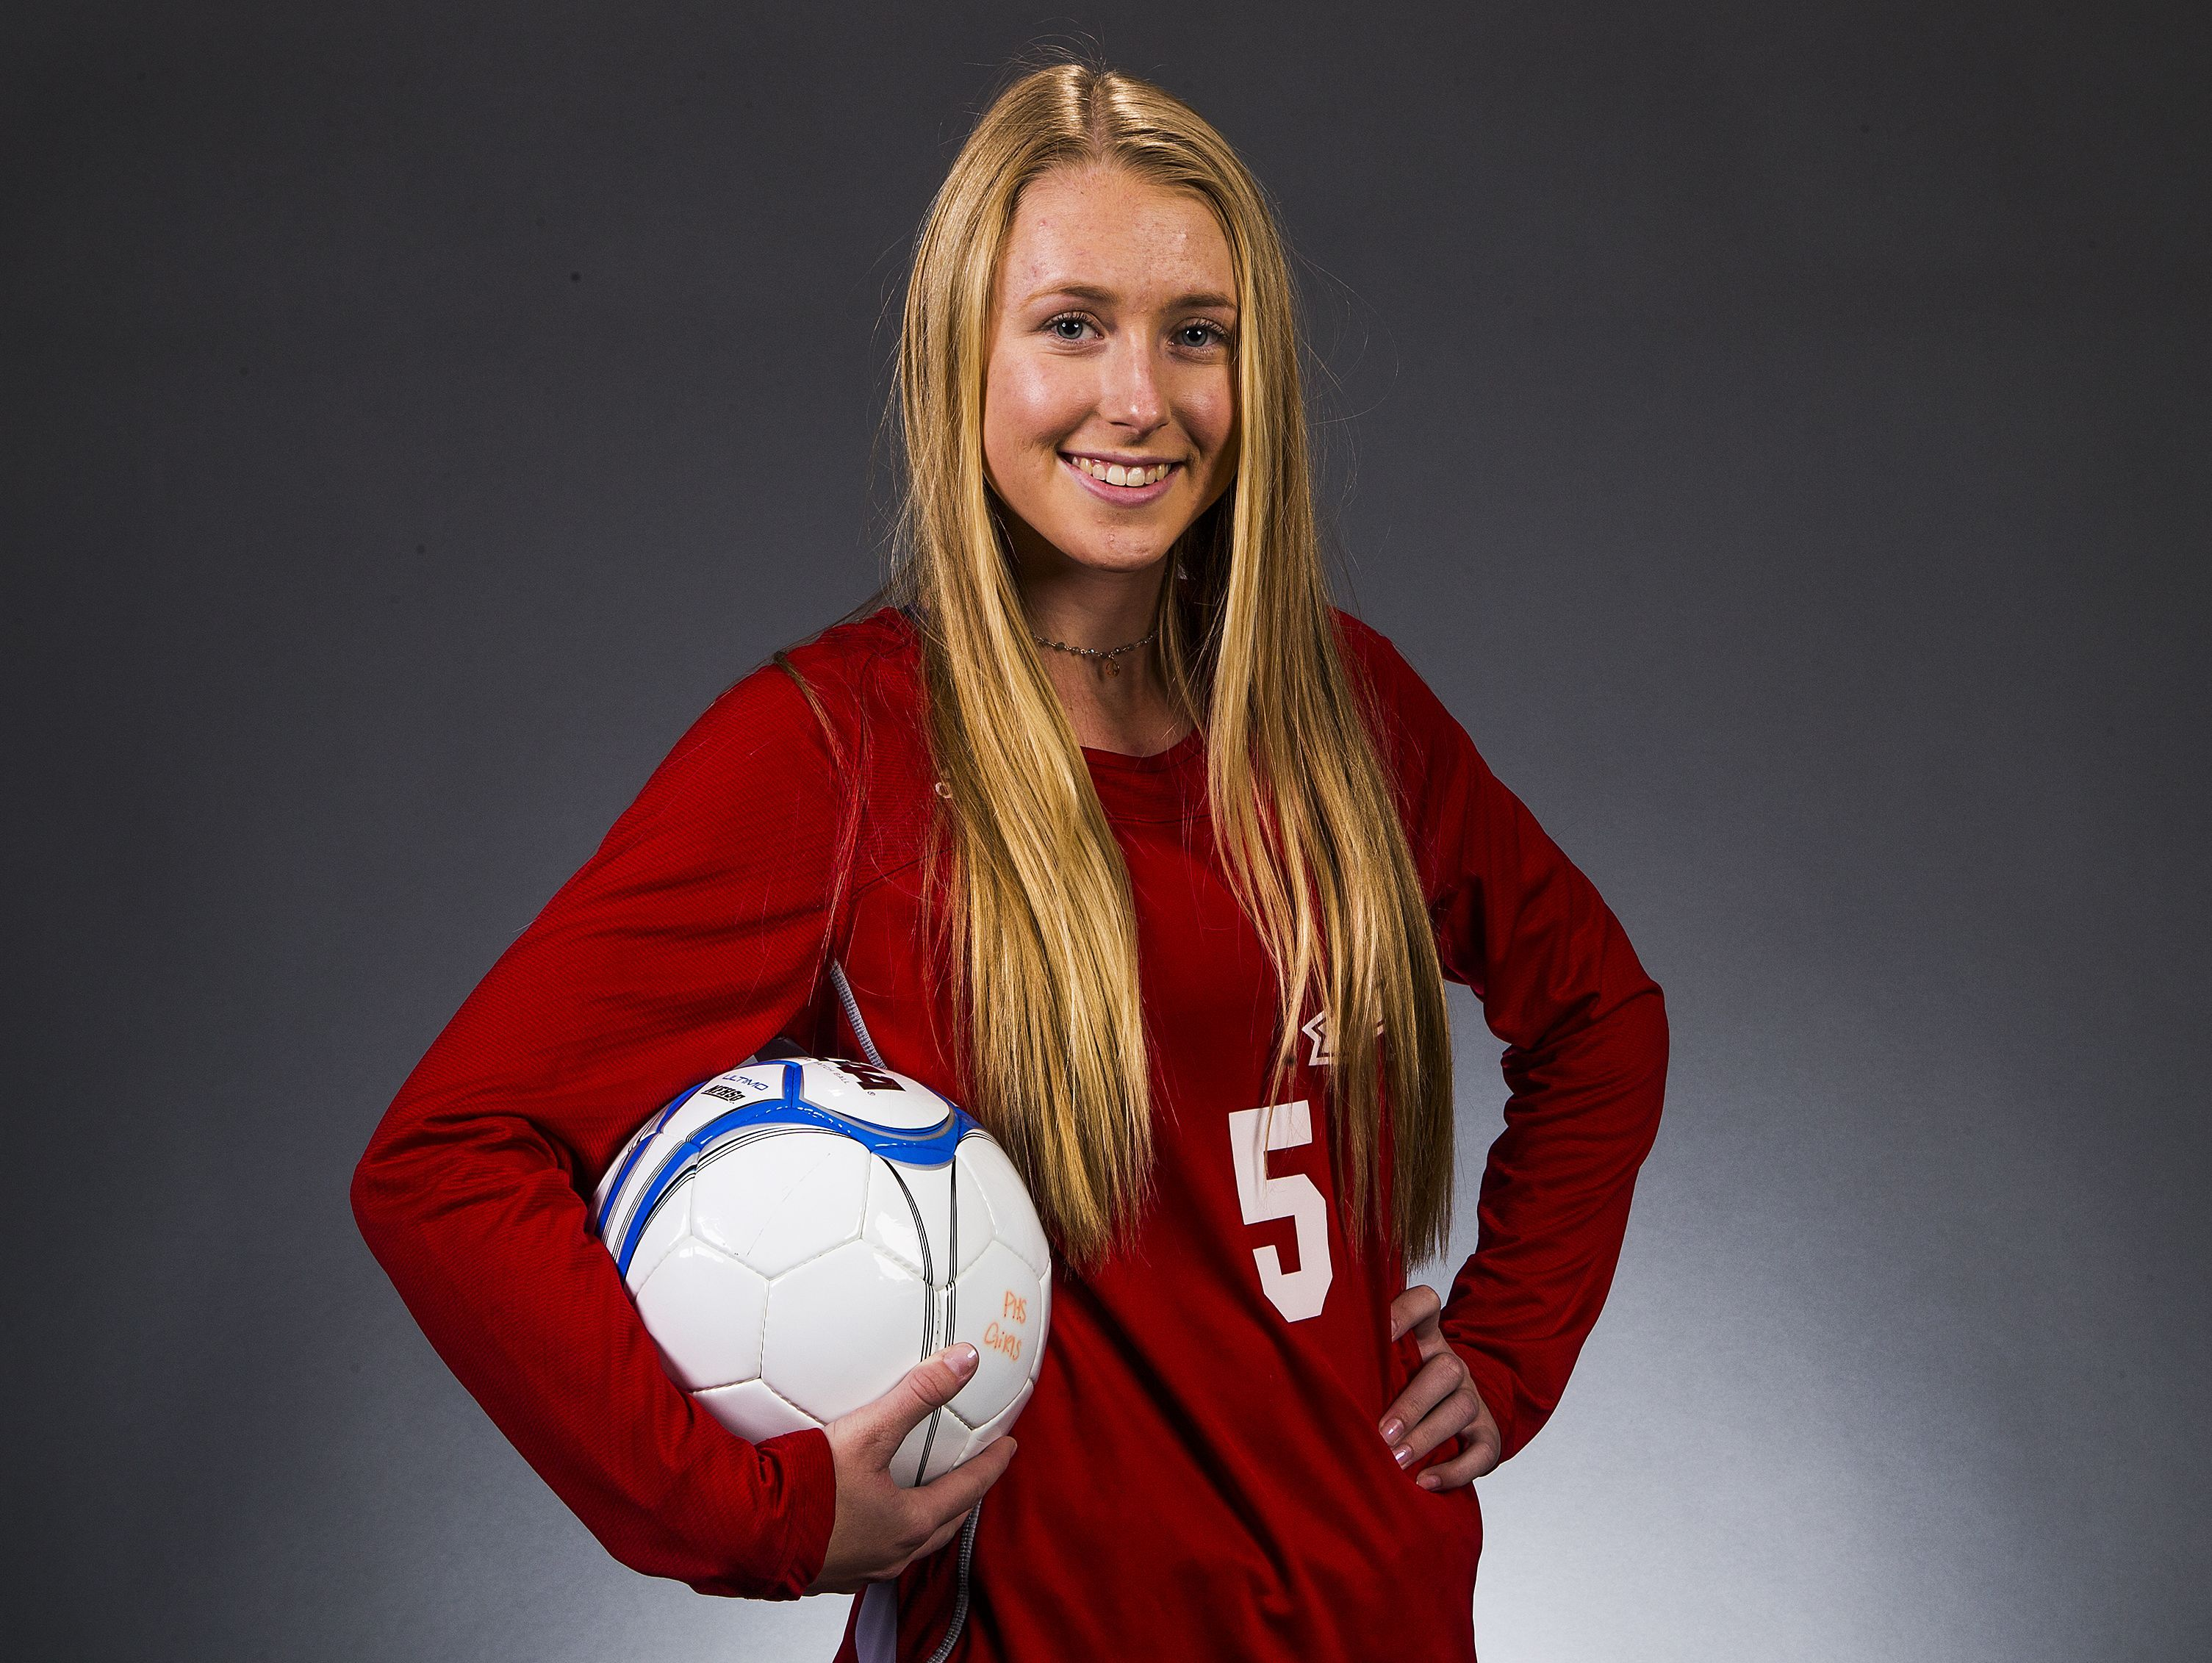 Phoenix Arcadia junior striker Kalena Teufel is a finalist for the azcentral.com Sports Awards Big Schools Girls Soccer Athlete of the Year award.